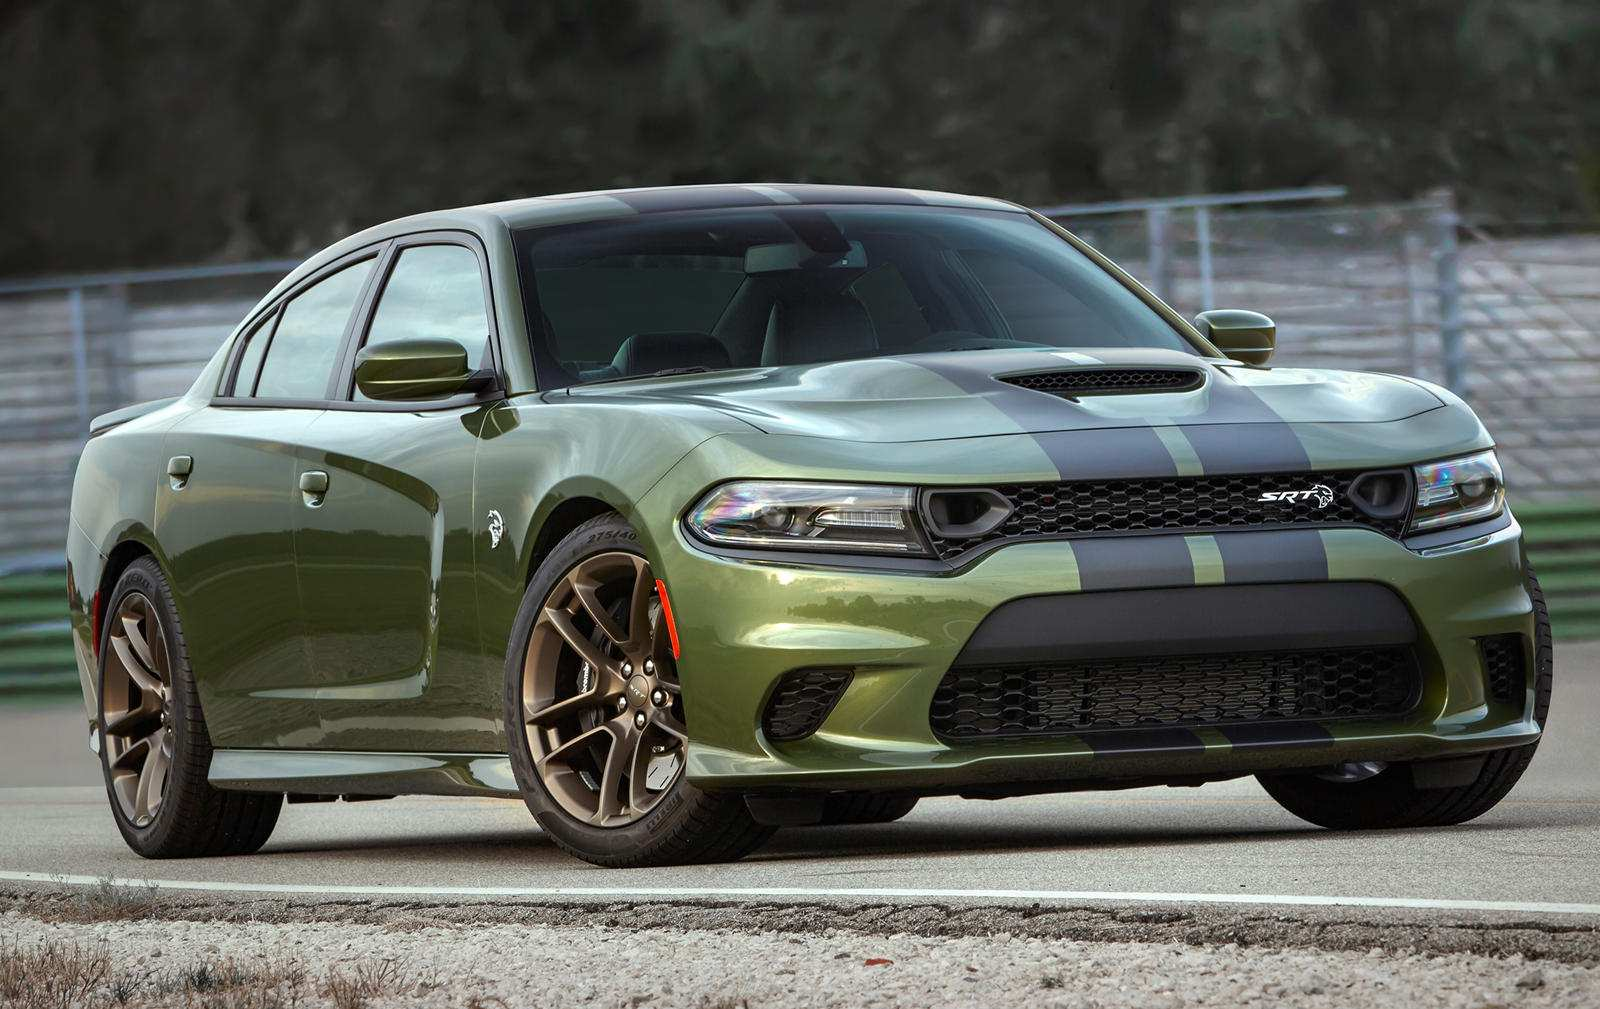 19 Best Dodge Charger 2020 Rumors